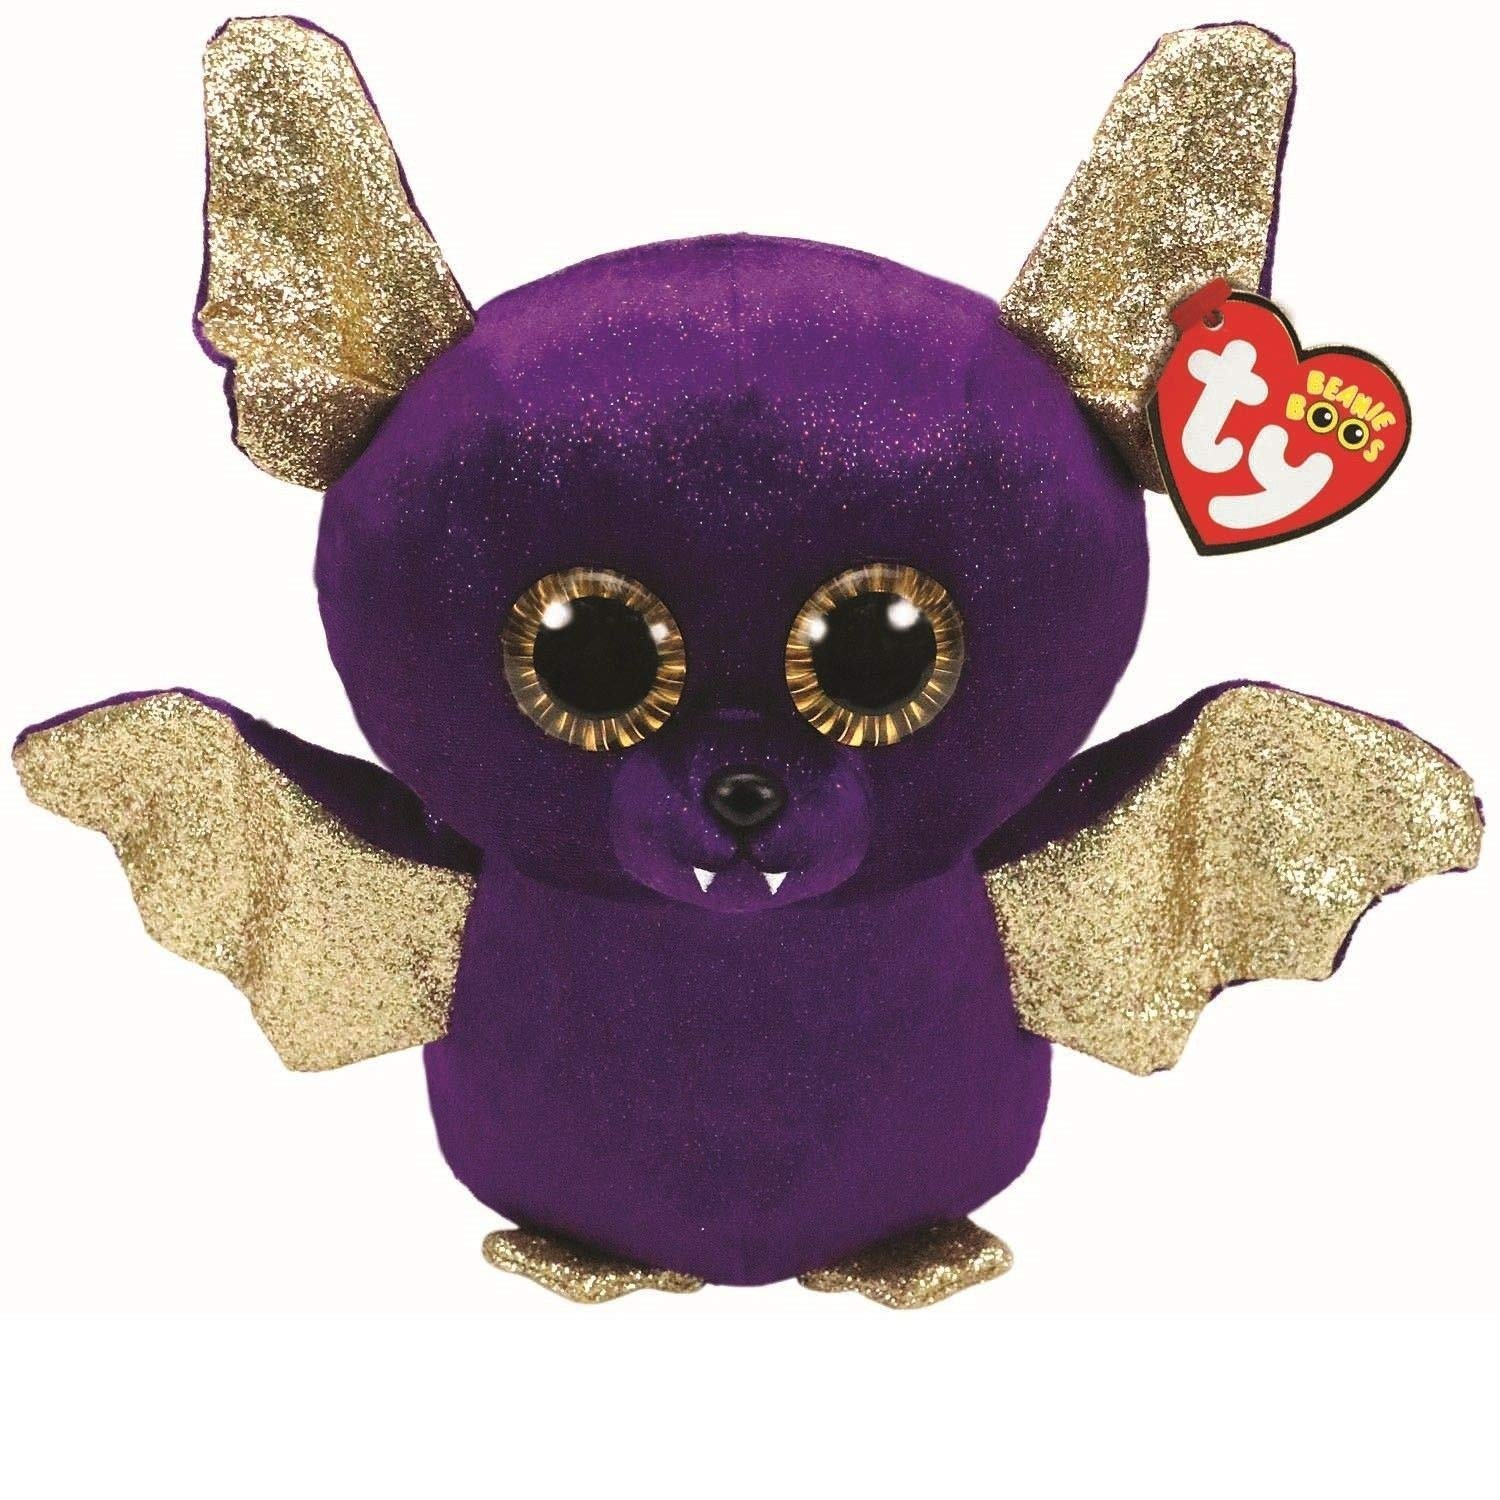 945473d7e09 Beanie Boo Bat Toys  Buy Online from Fishpond.com.au